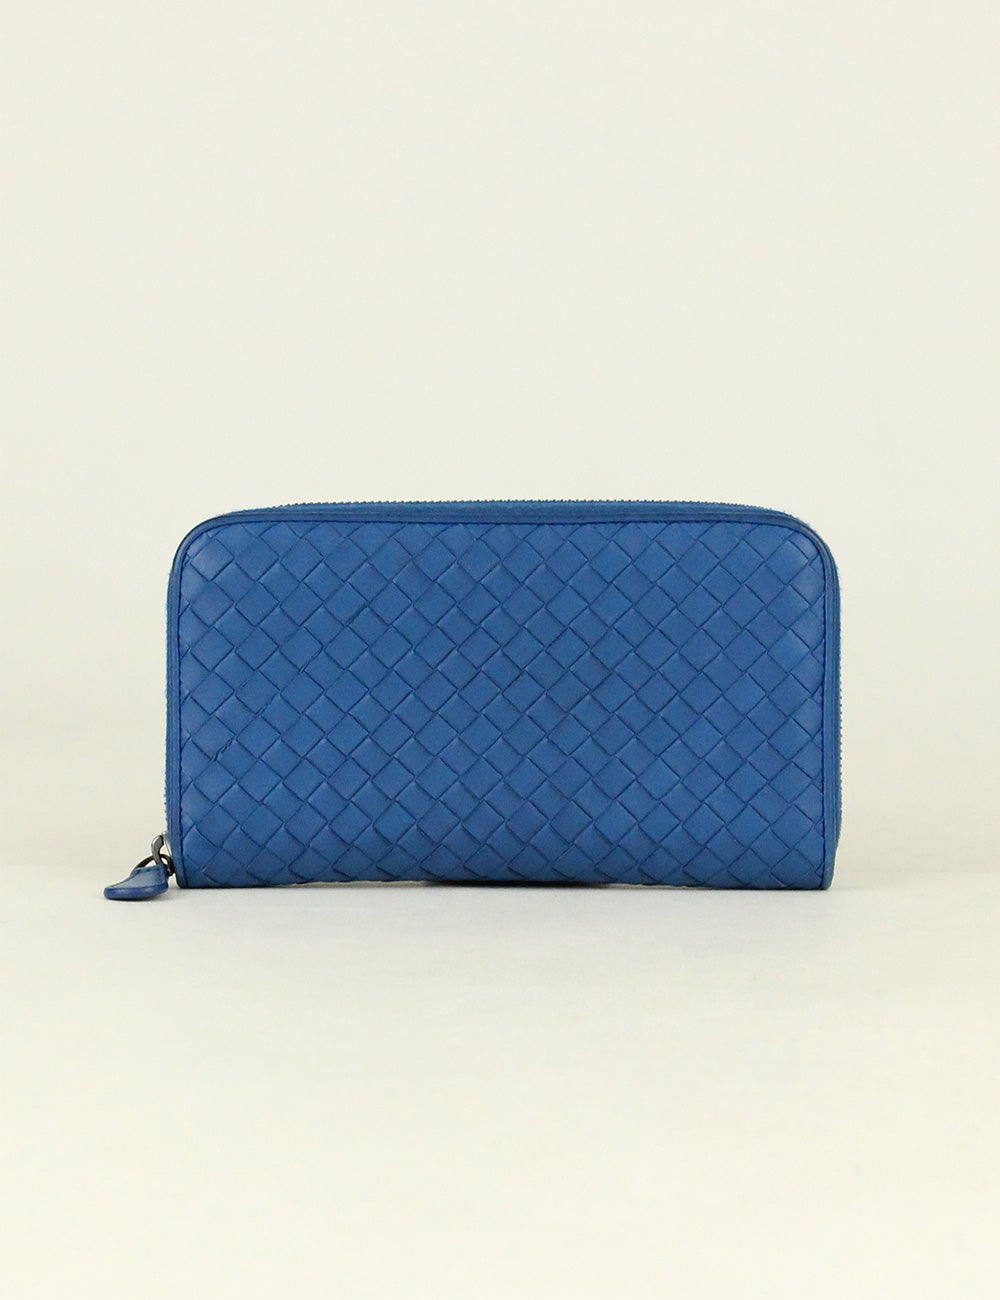 Bottega Veneta <br> Intrecciato Zip Around Wallet